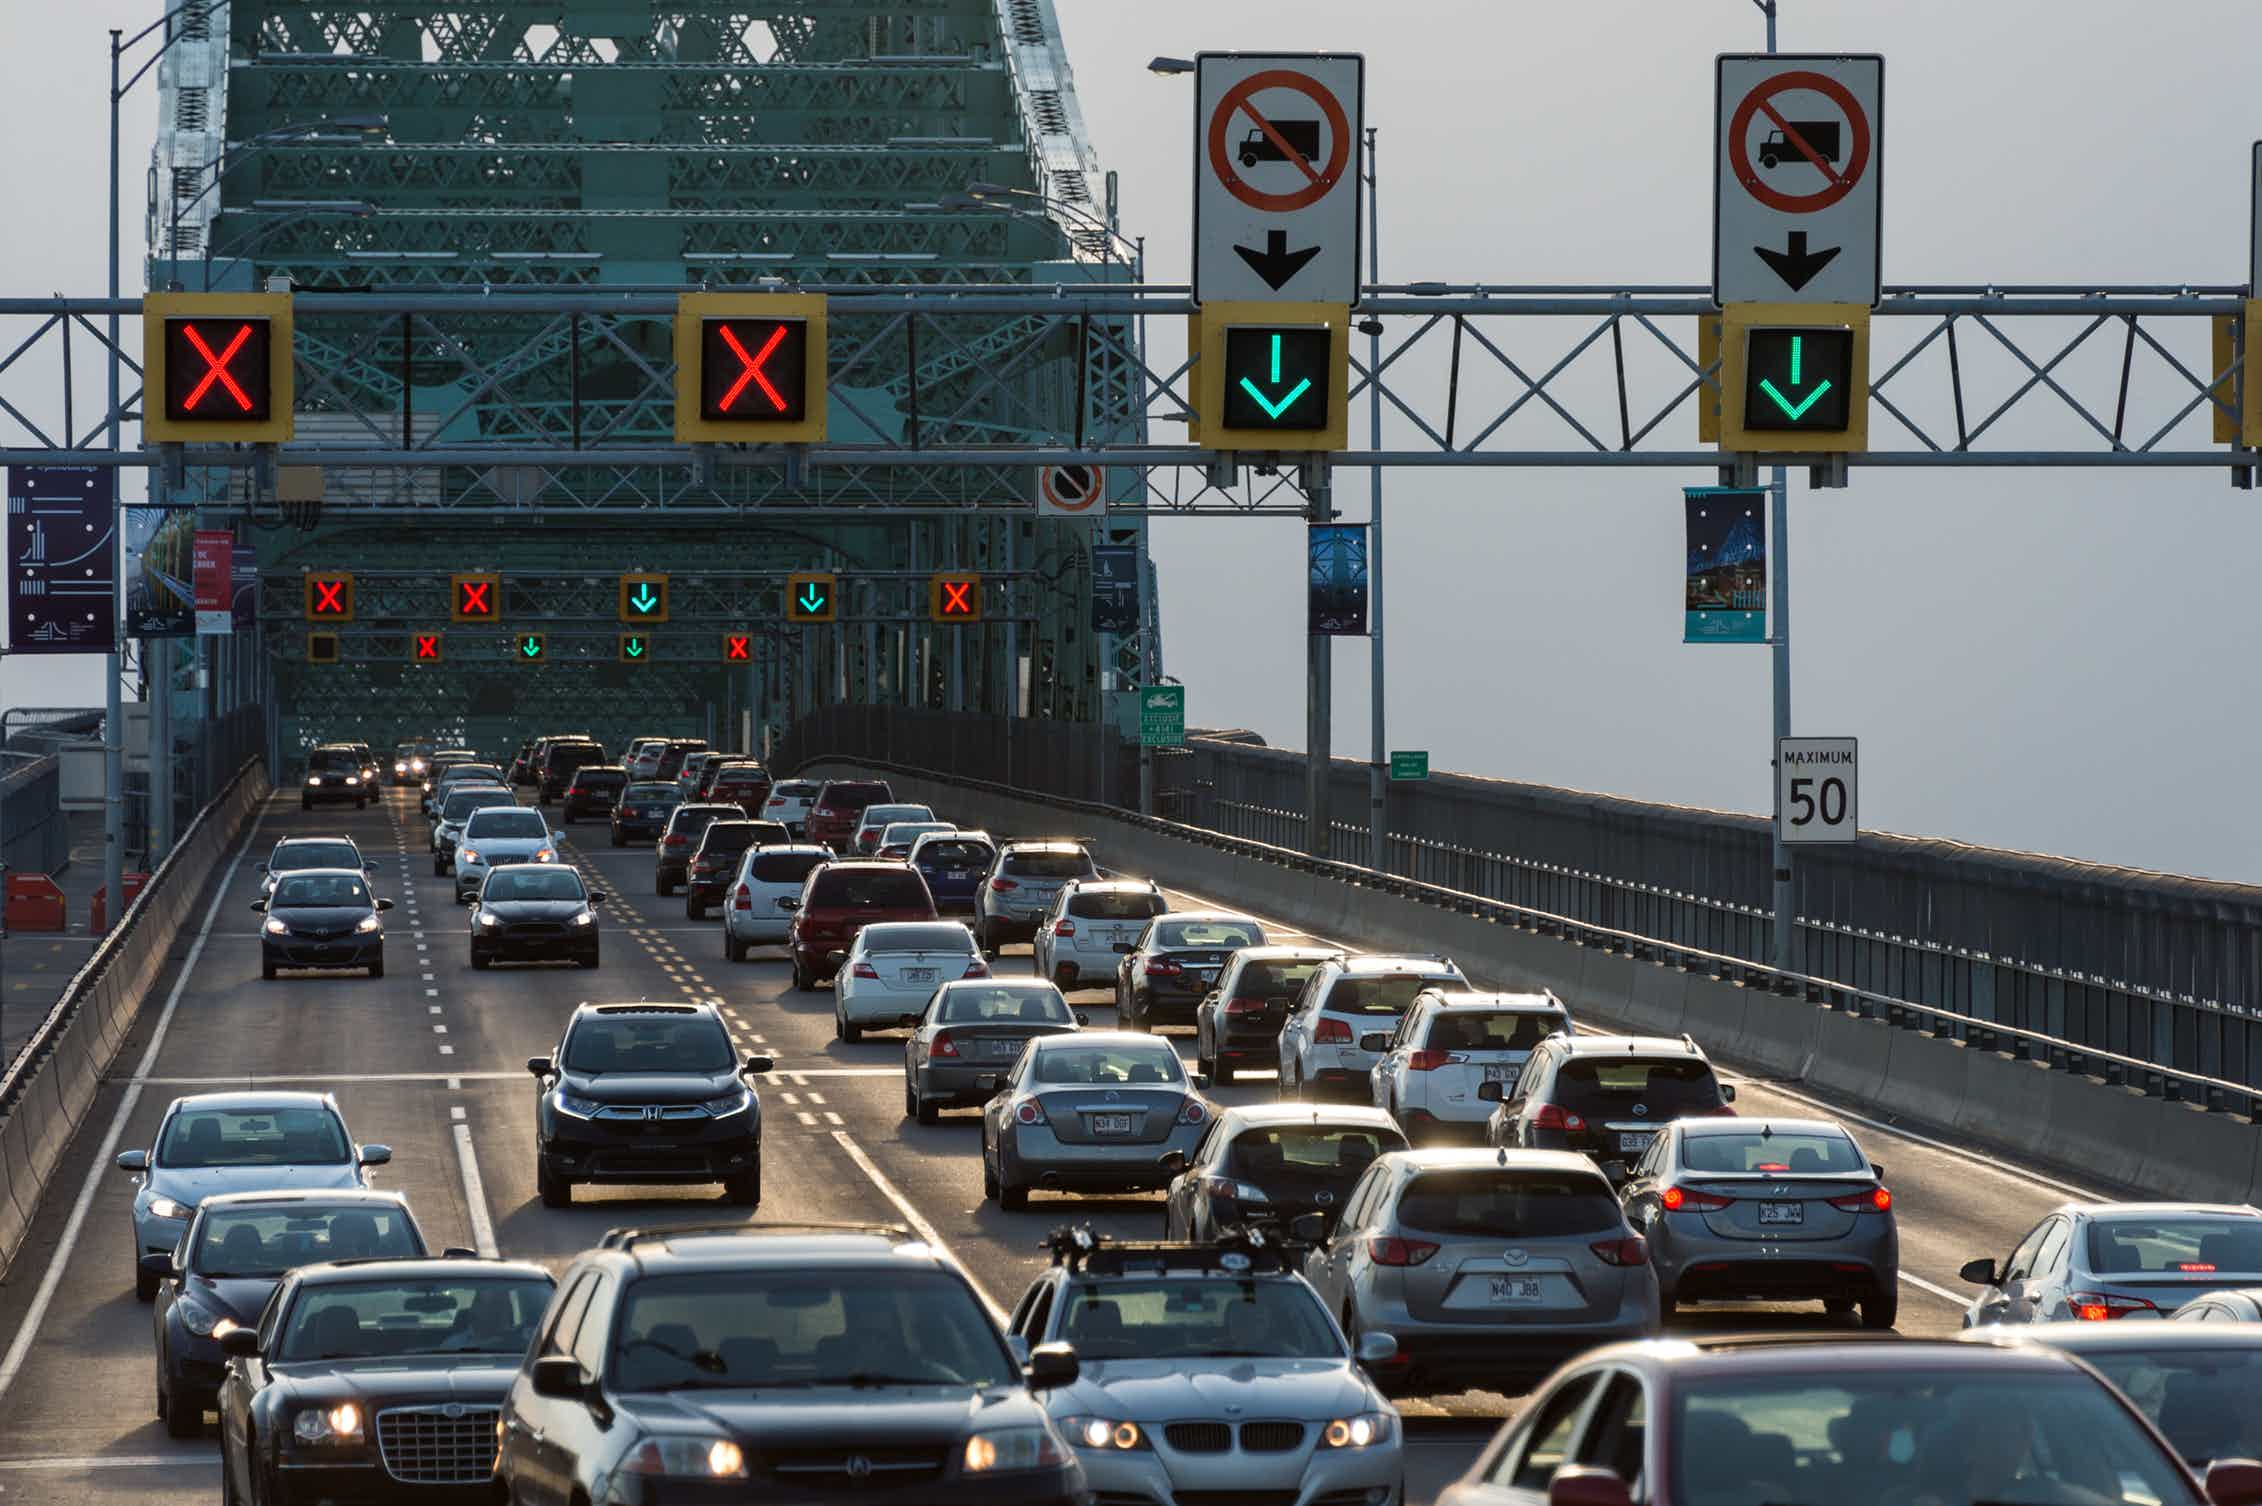 Remove car lanes, restrict vehicles and improve transit to reduce traffic congestion